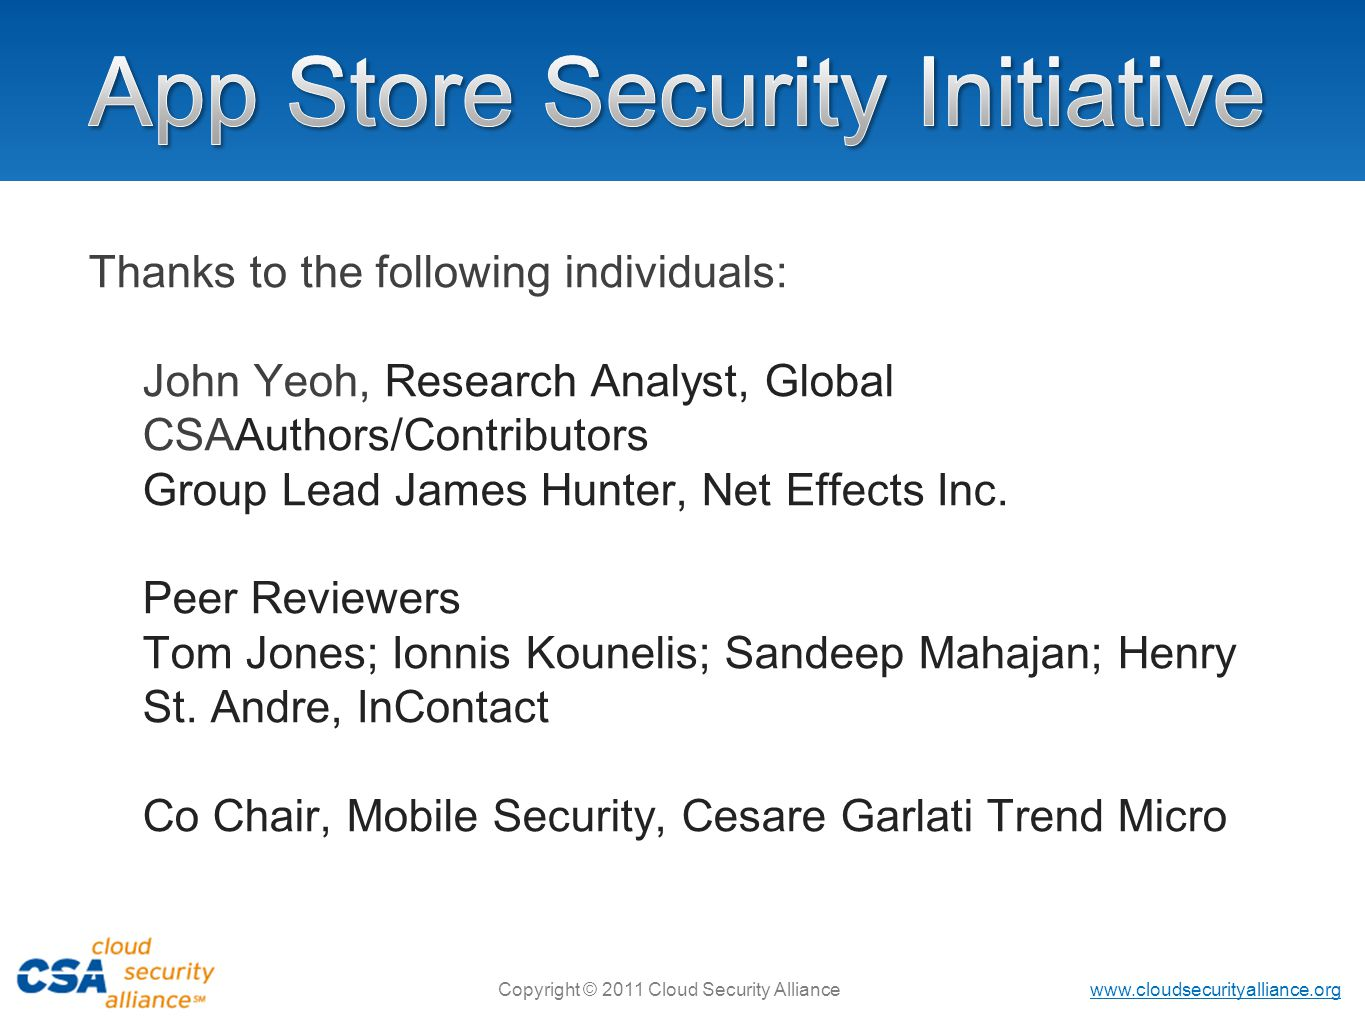 App Store Security Initiative